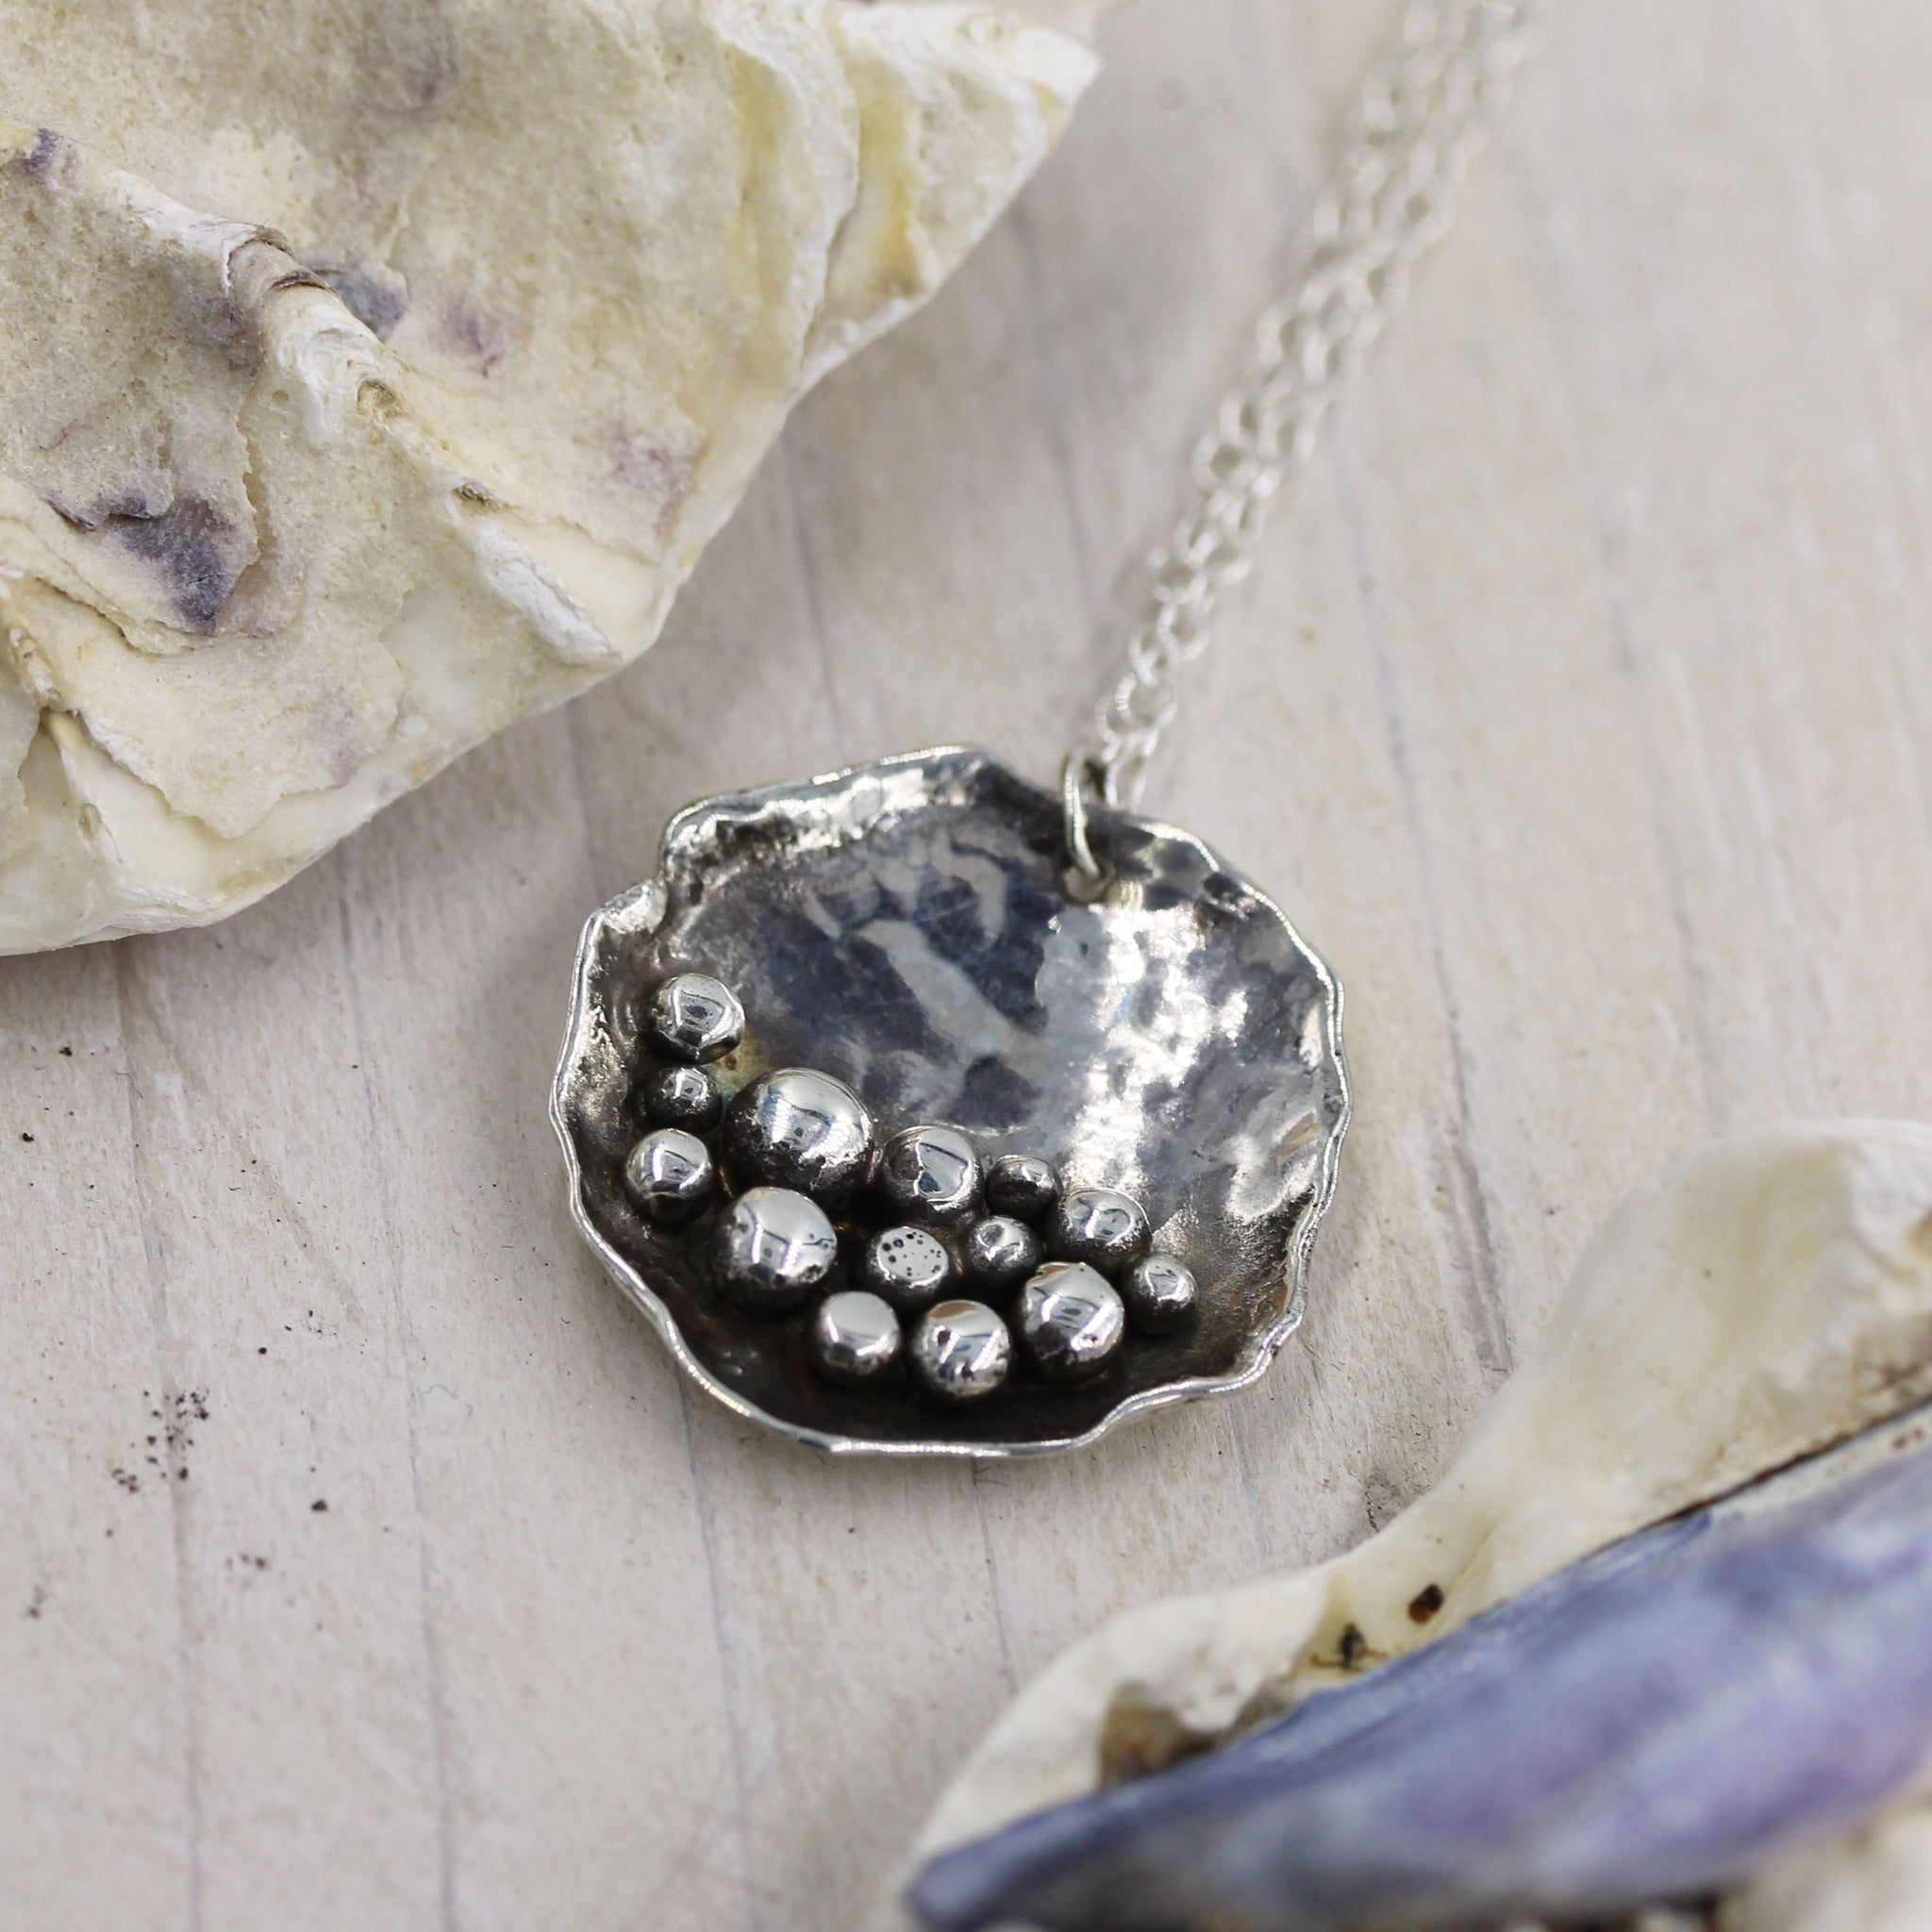 Beautiful handmade 'Pebbles on the Beach' necklace by Gemma Tremayne Jewellery. Handmade in sterling silver, this necklace features sterling silver pebbles, representing pebbles on the shoreline.